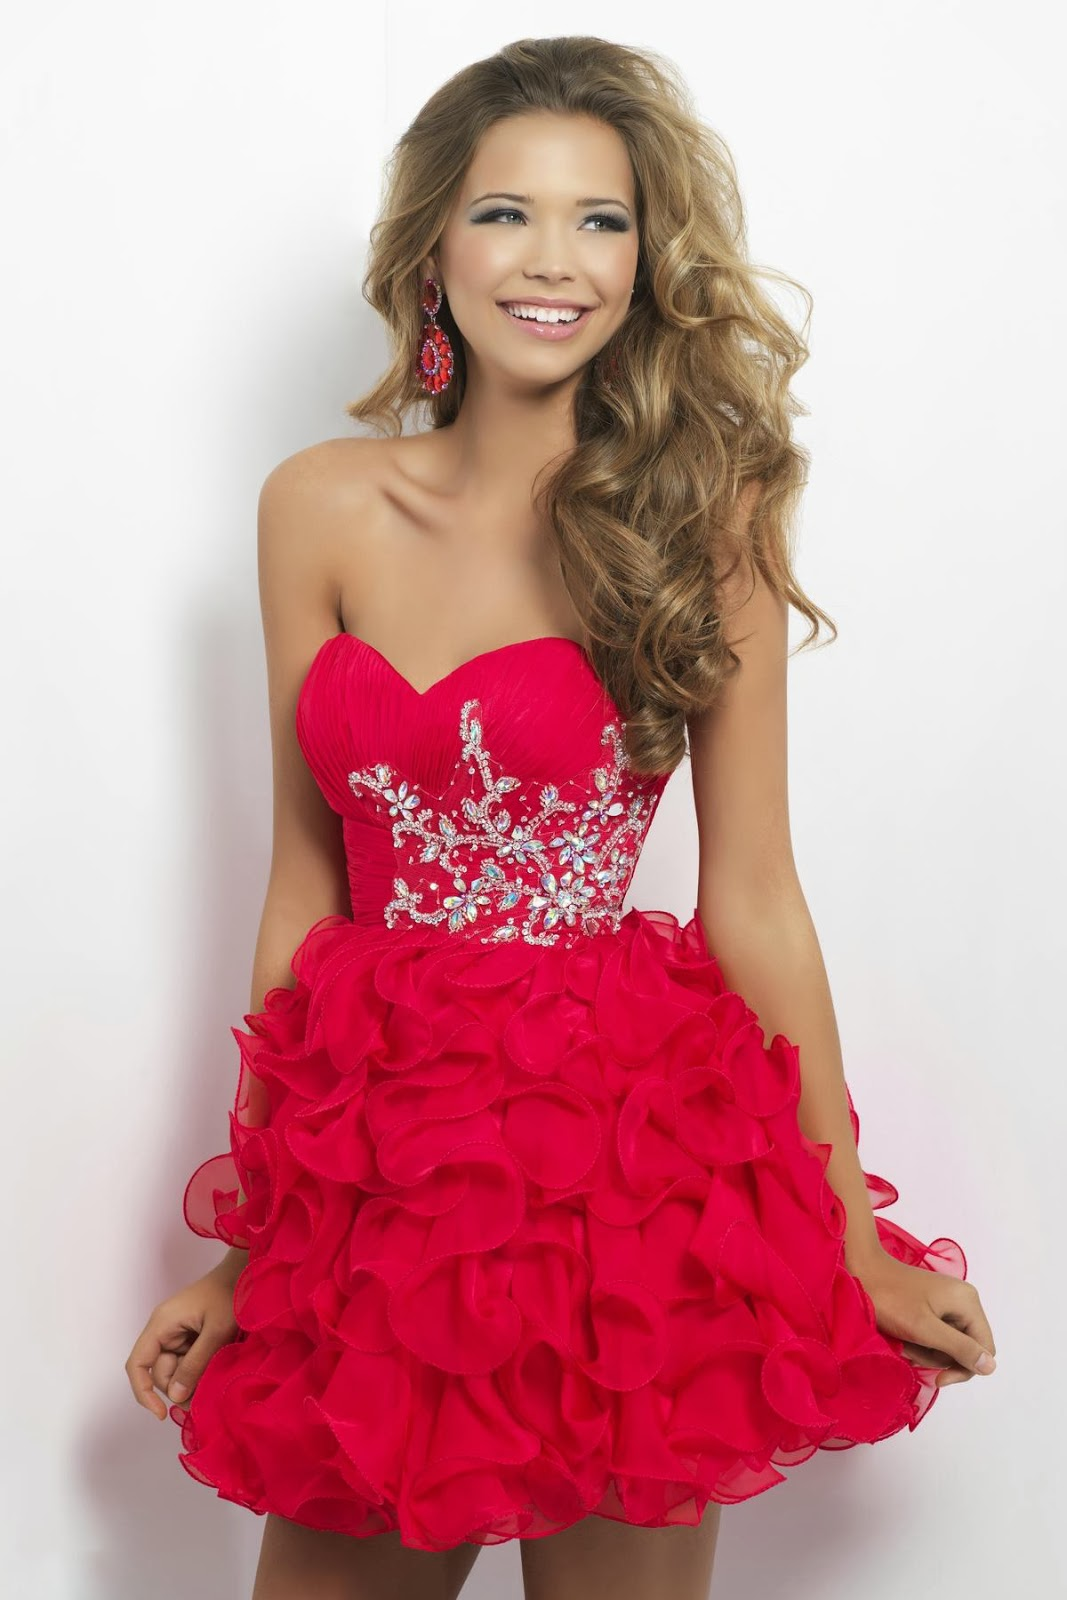 Hairstyles 2013: Red homecoming dresses 2014